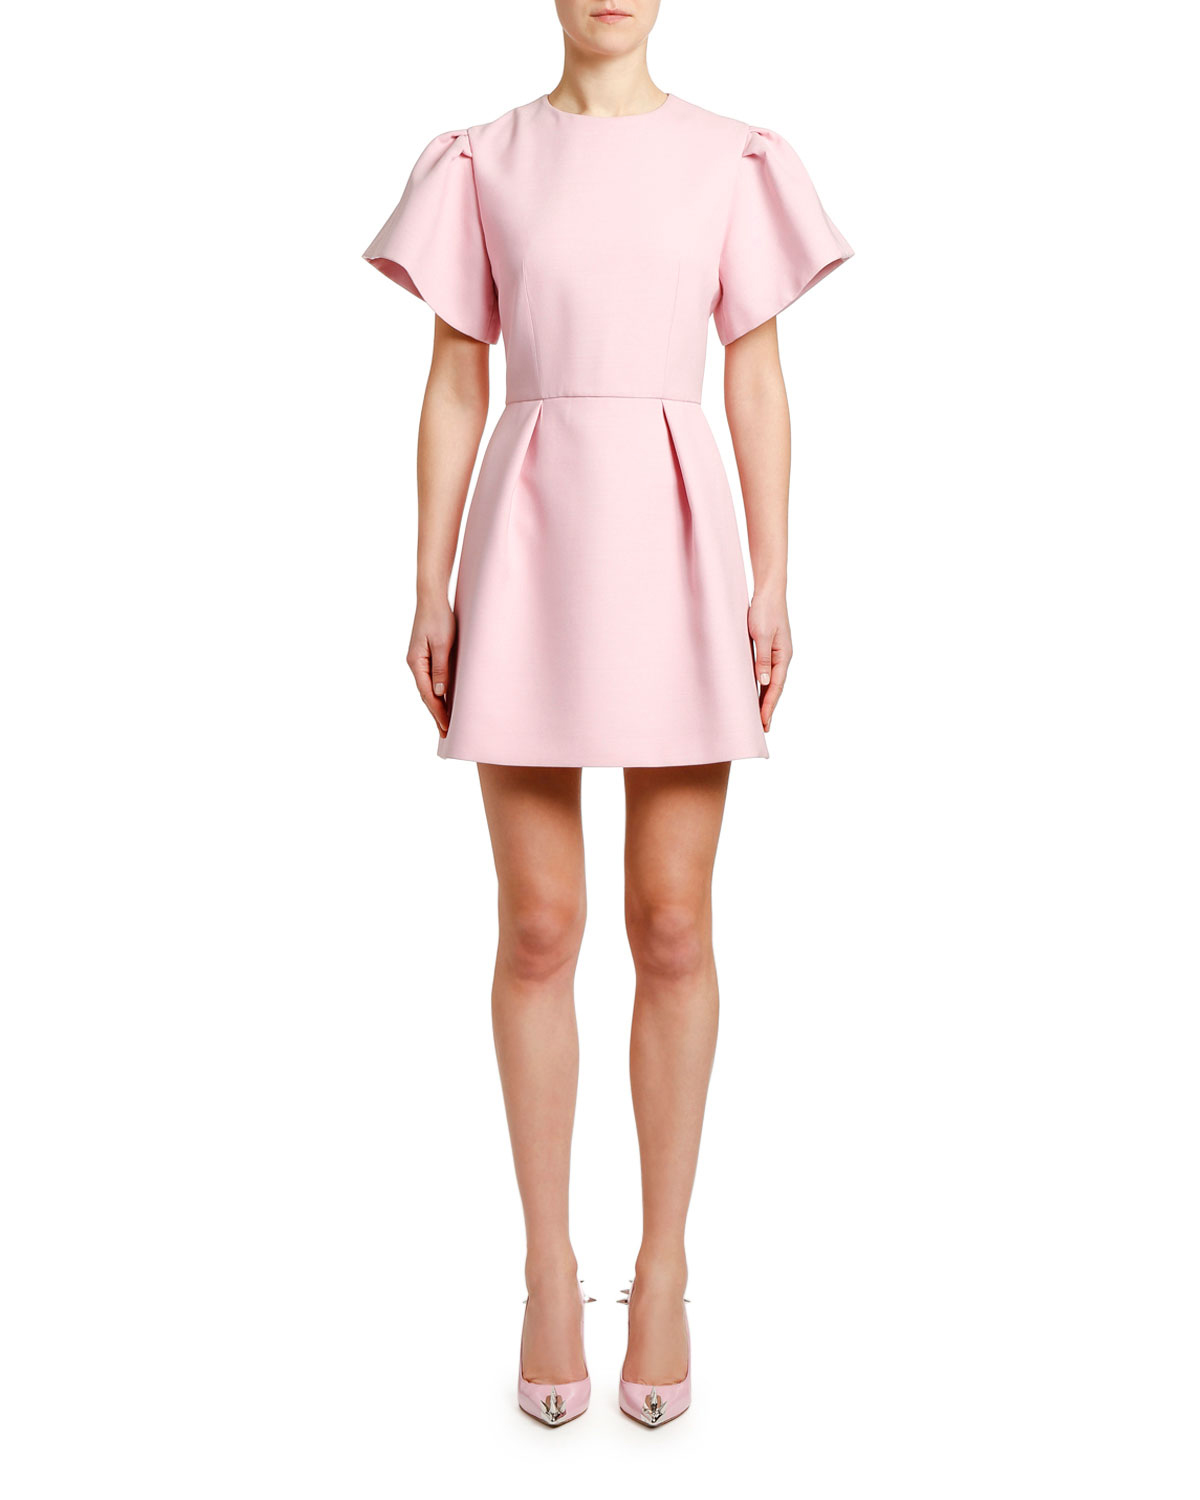 Alexander McQueen Puff-Sleeve Fit-and-Flare Mini Dress